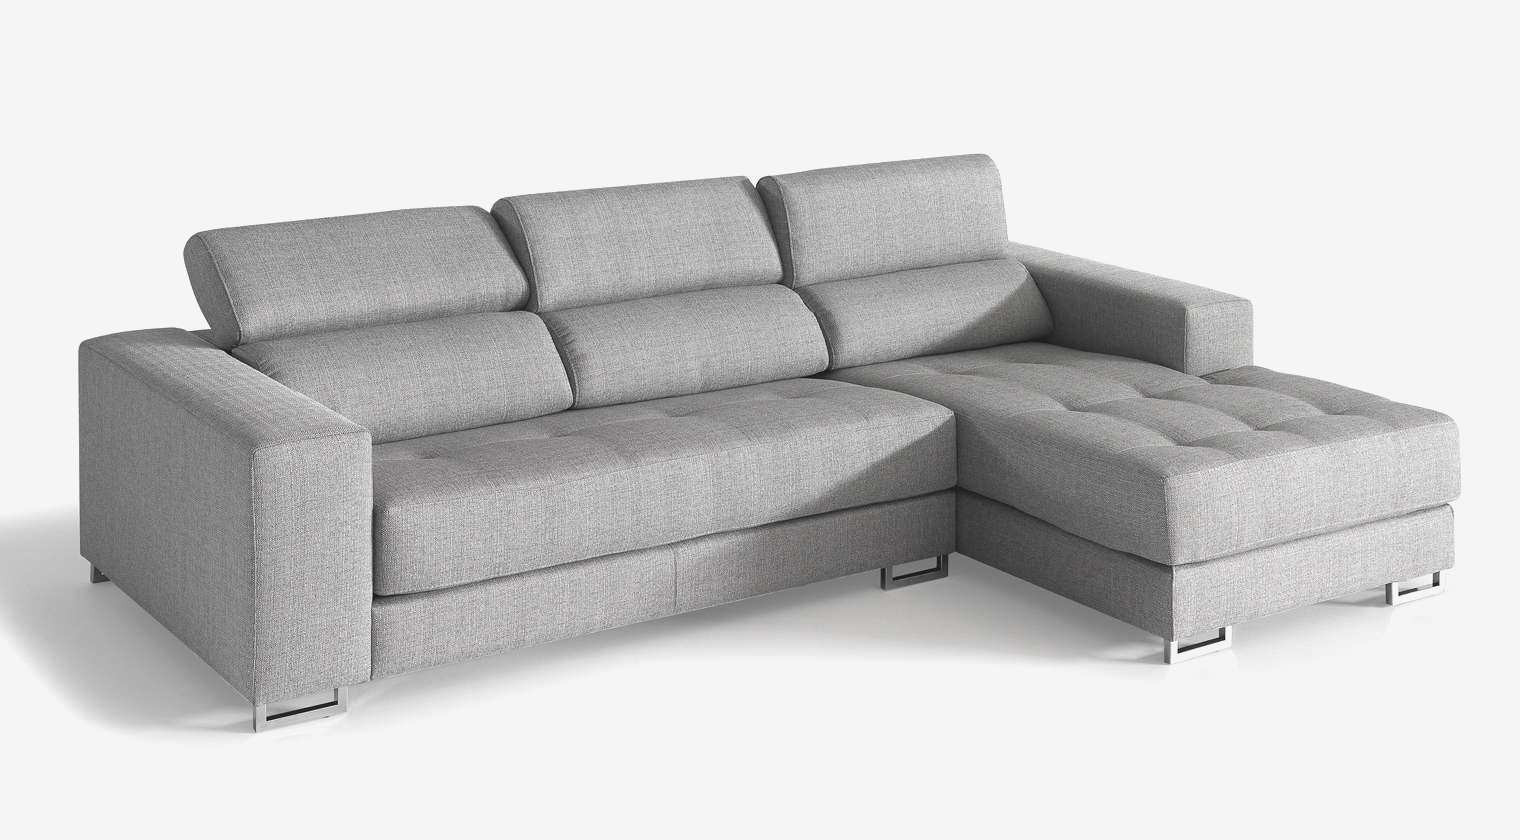 Sofas Chaise Longue 5 Plazas Único Fresh Prar Chaise Longue Tela Lleida Mod sofa 3 5 Plazas Of 16  Impresionante sofas Chaise Longue 5 Plazas